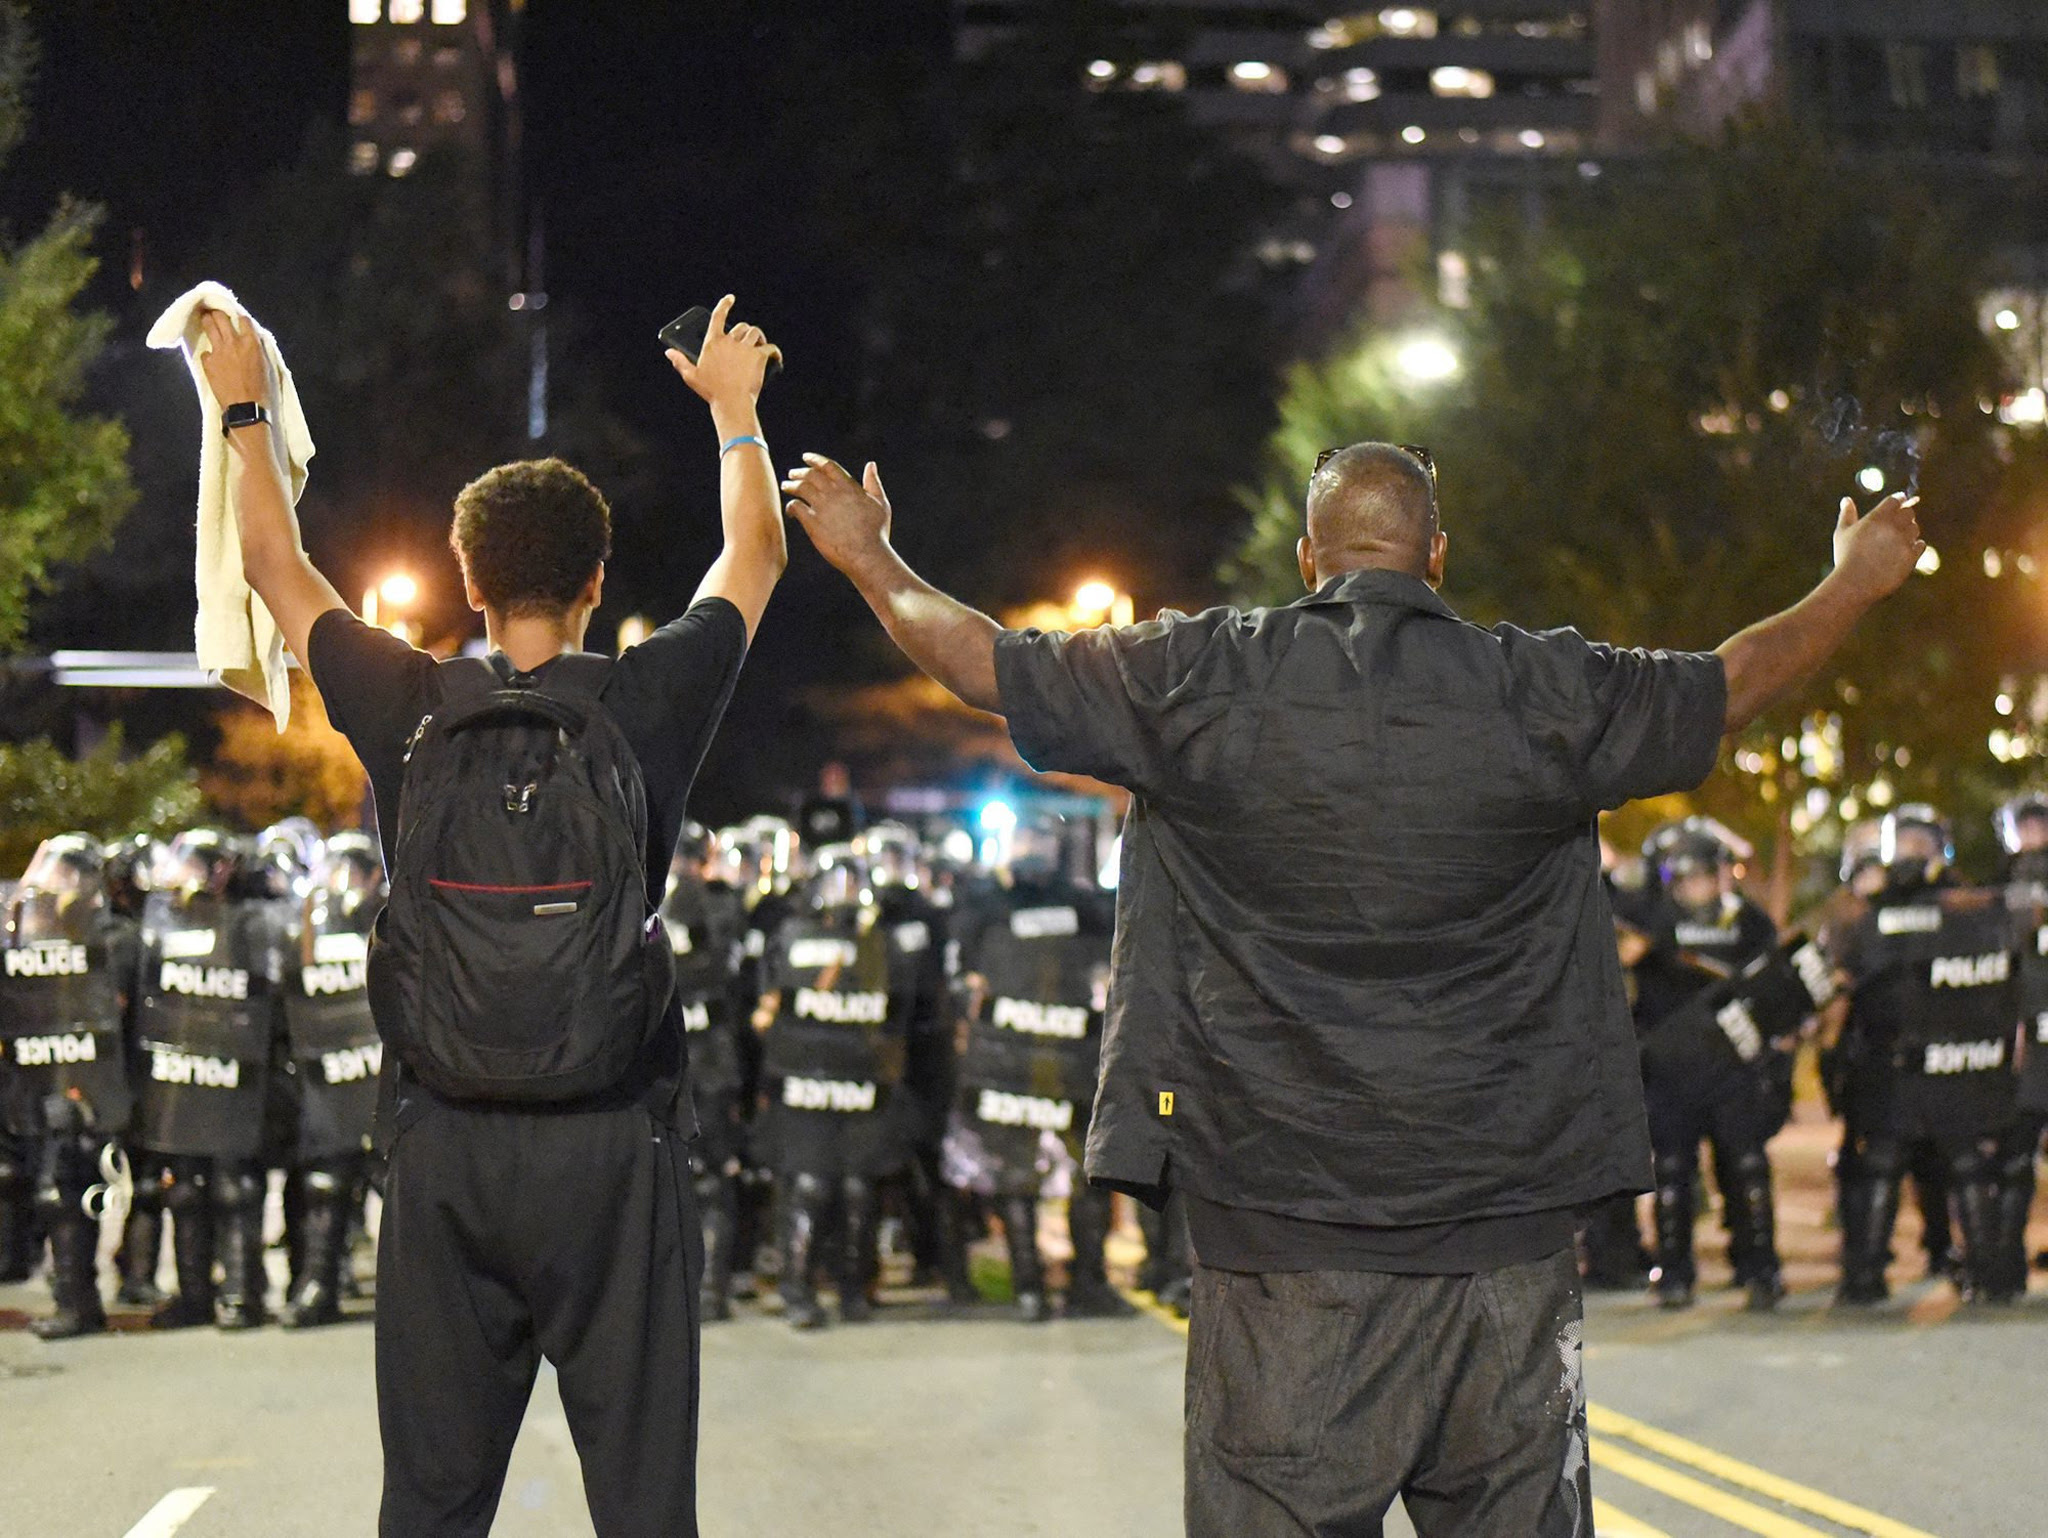 Protesters shout and confront riot police officers in Charlotte, North Carolina, USA